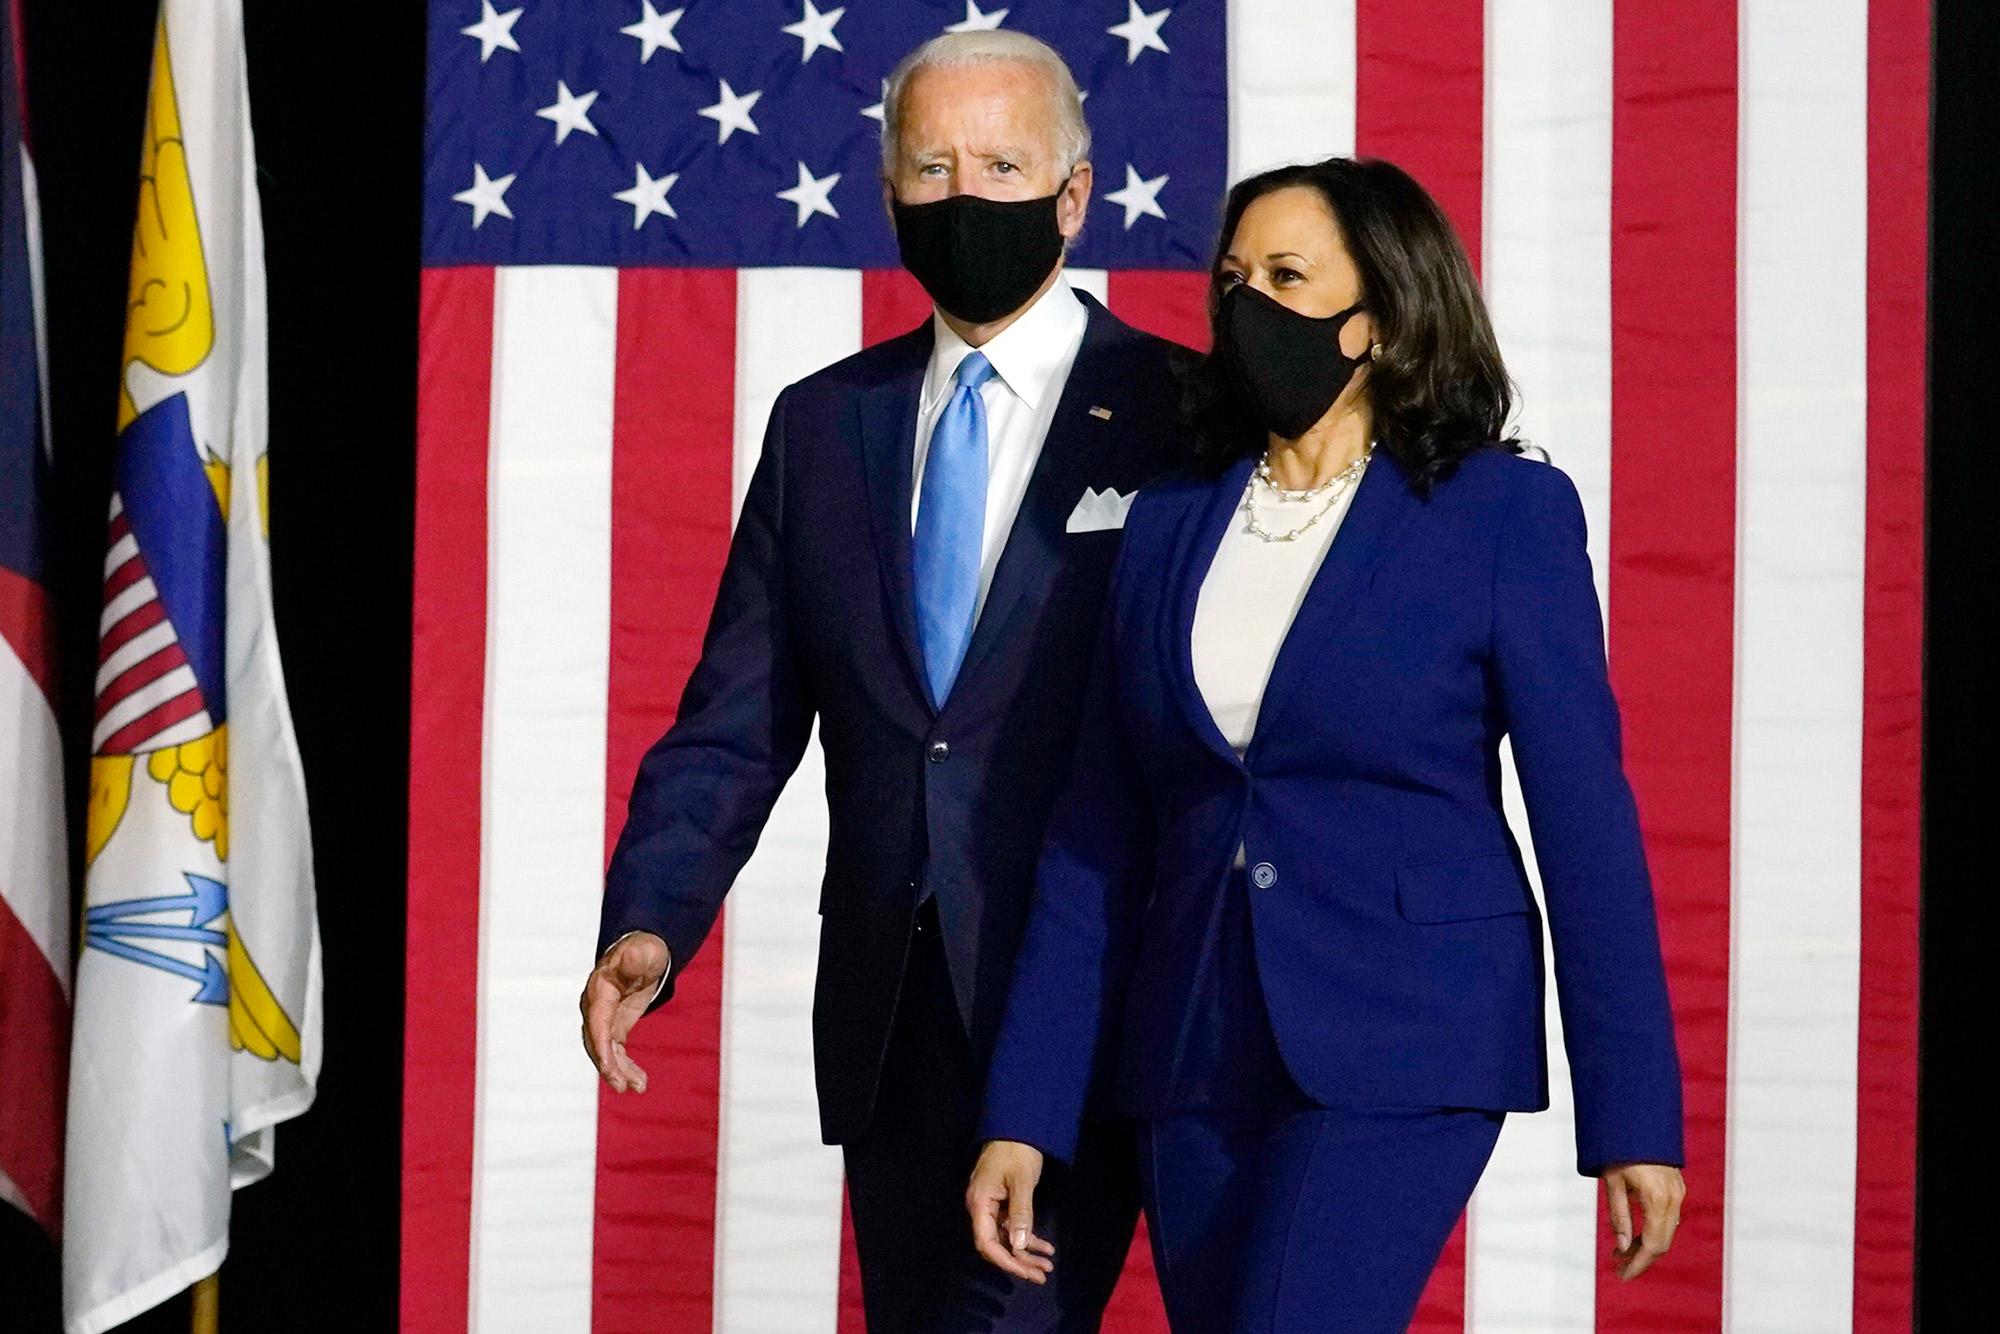 Democratic presidential candidate former Vice President Joe Biden and his running mate Senator Kamala Harris arrive to speak at a news conference at Alexis Dupont High School in Wilmington, Delaware, on August 12.